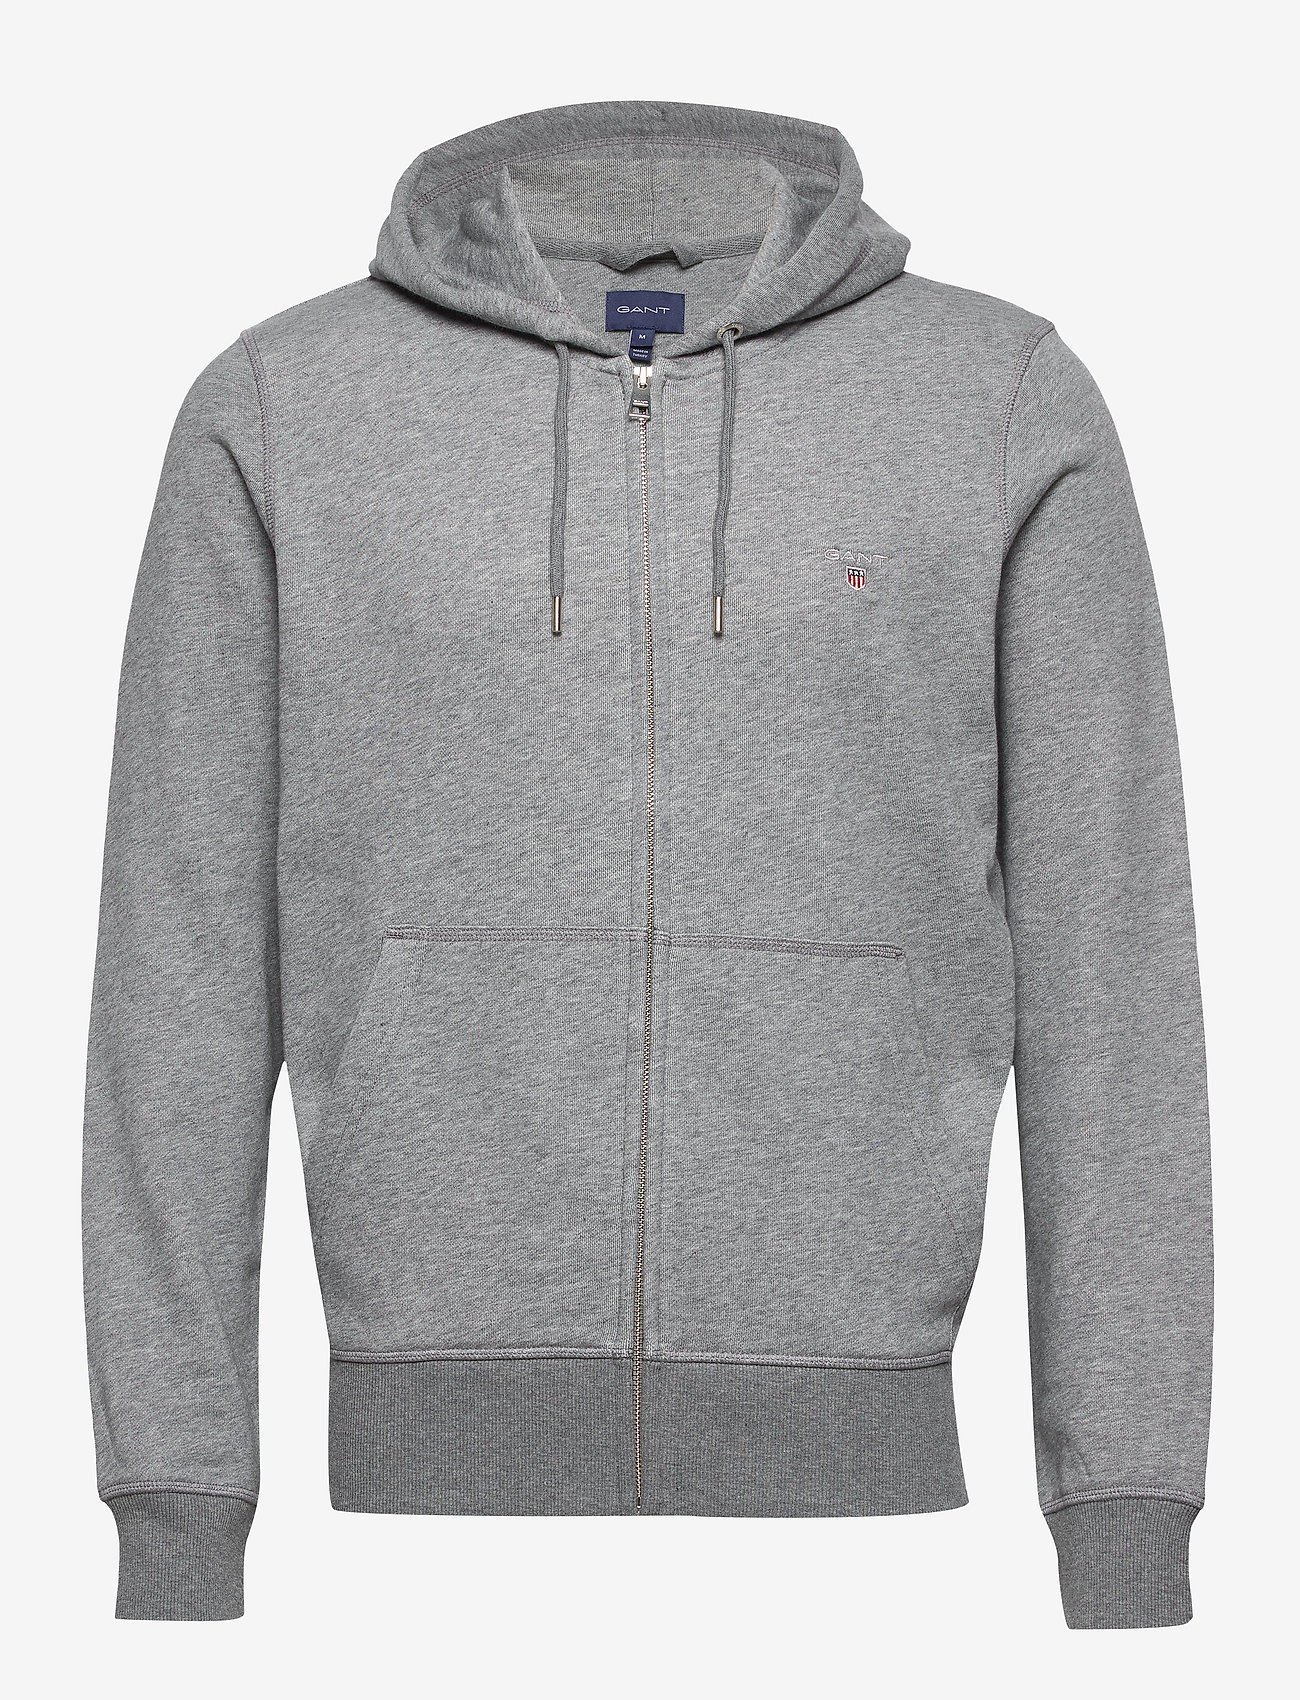 GANT - THE ORIGINAL FULL ZIP HOODIE - hoodies - dark grey melange - 0